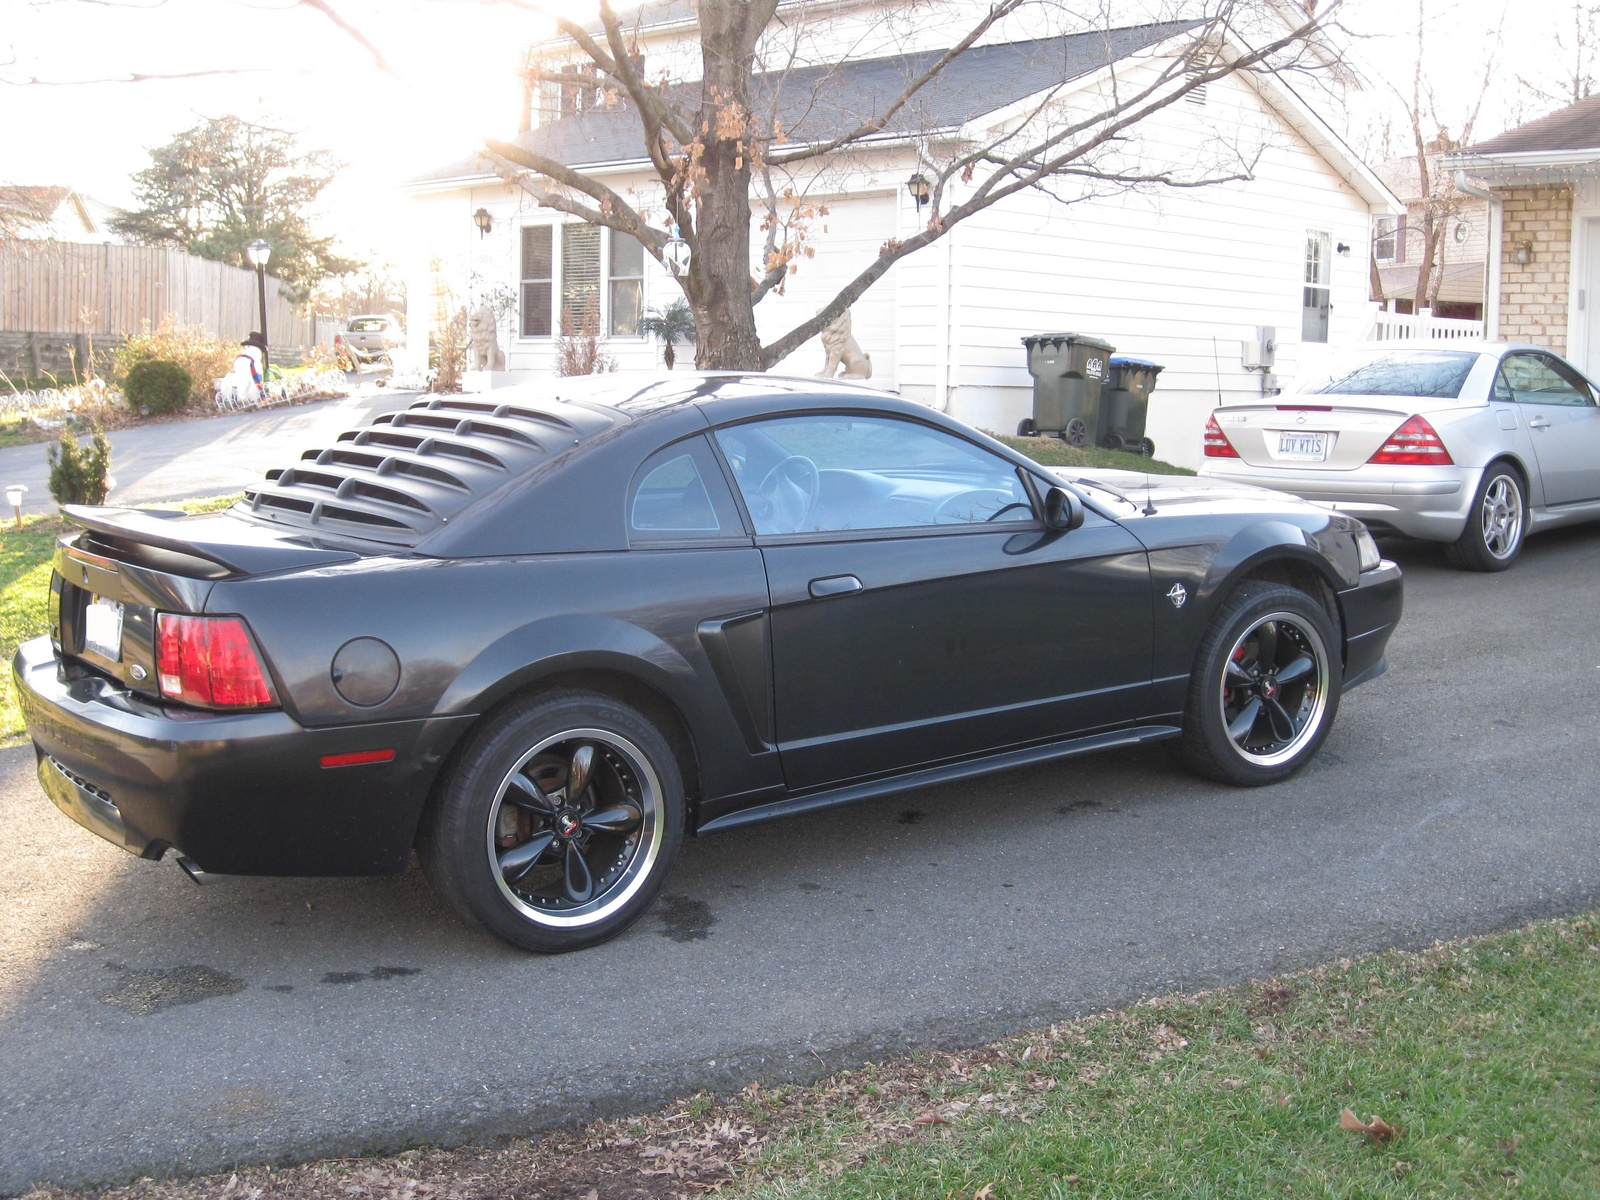 1999 ford mustang gt coupe picture of 1999 ford mustang 2 dr gt coupe. Black Bedroom Furniture Sets. Home Design Ideas